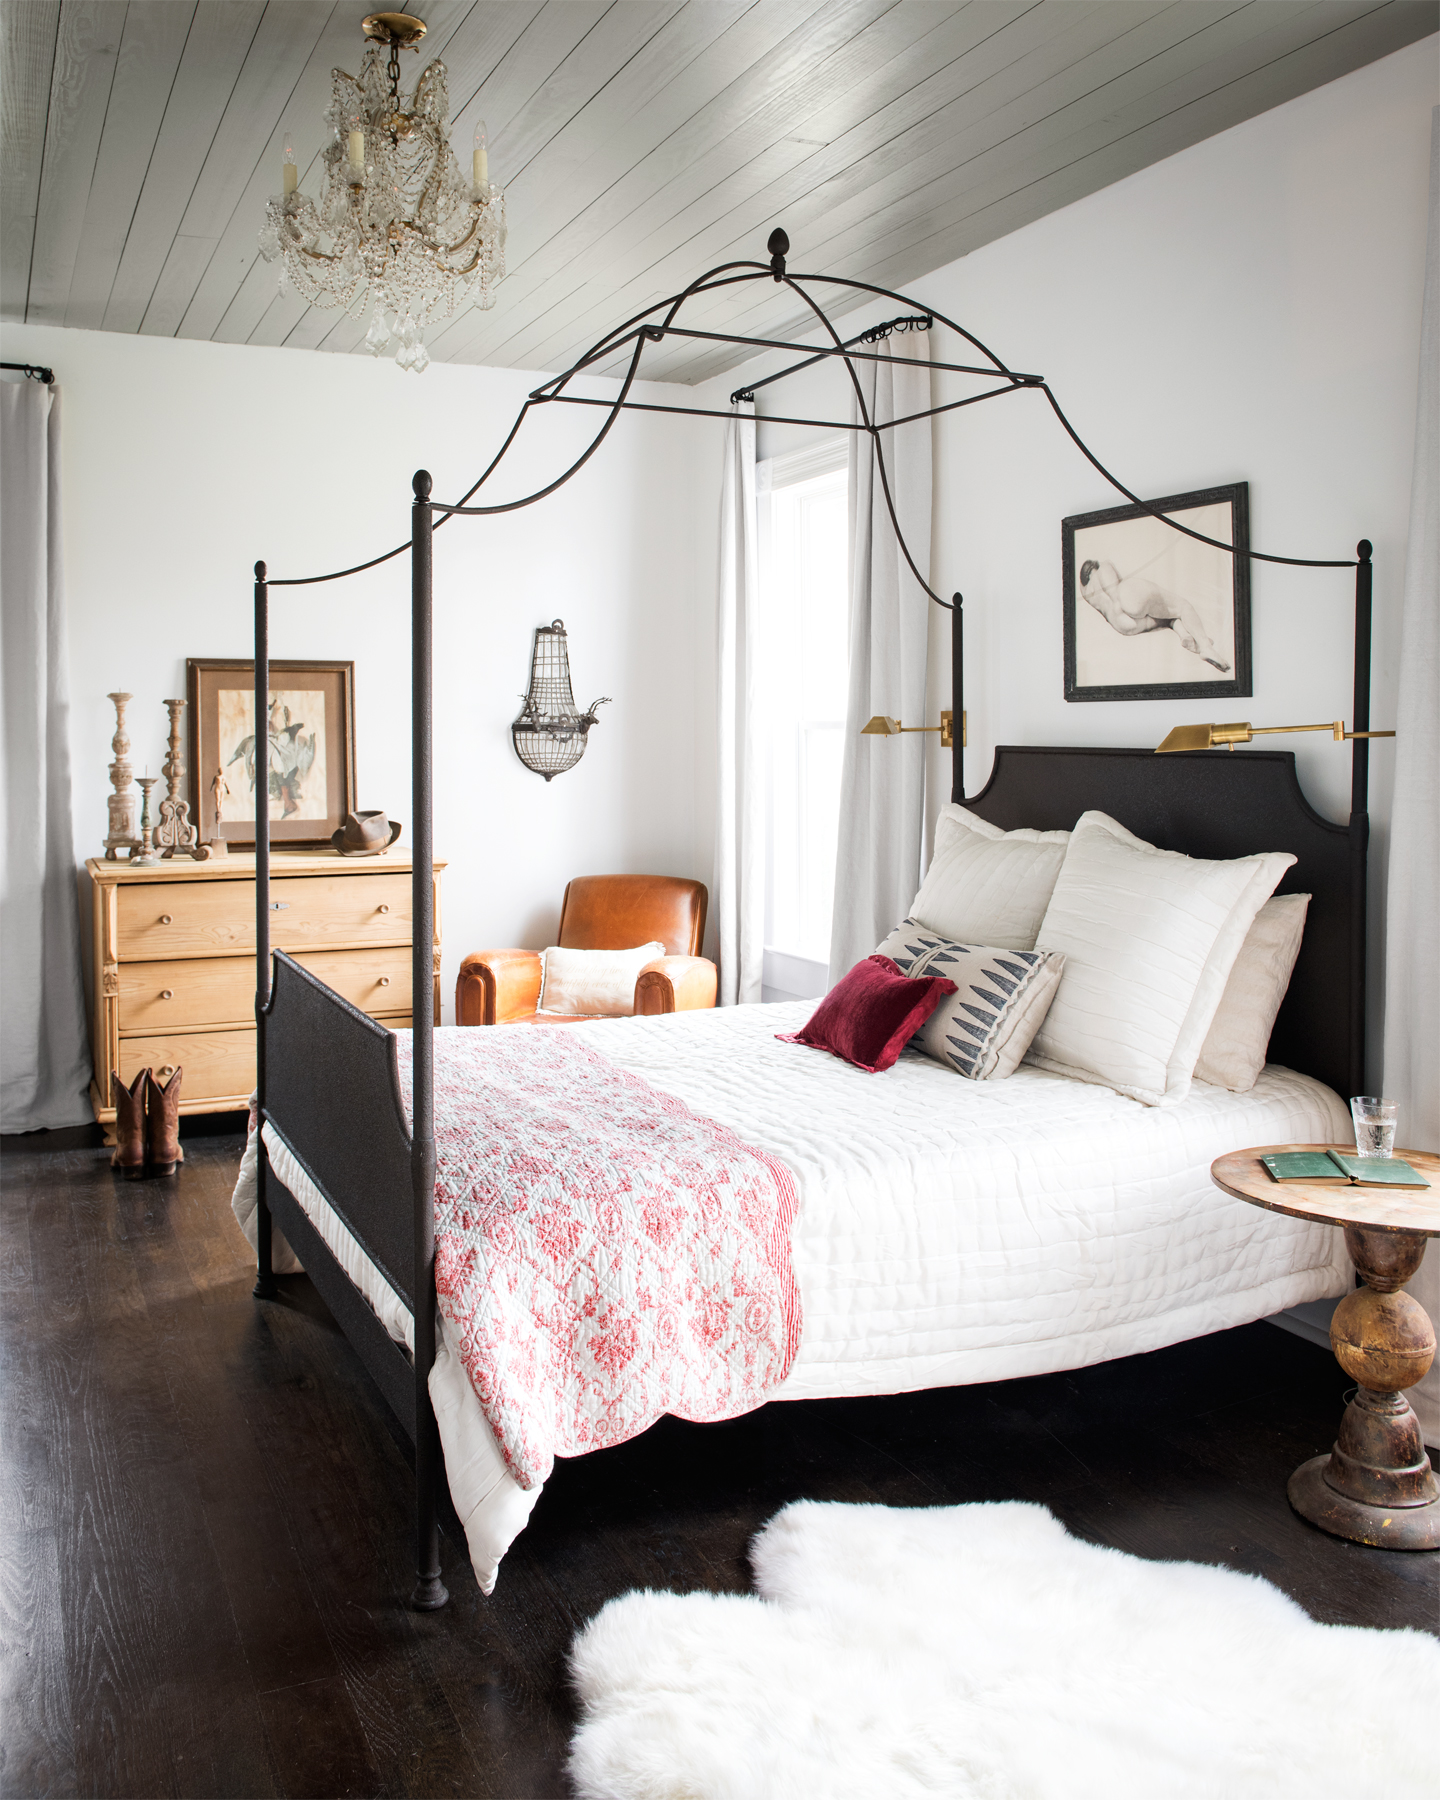 Unique  images via Lonny Thou Swell Architectural Digest Marcus Design Style Me Pretty Coats Home CC u Mike bed bed frames